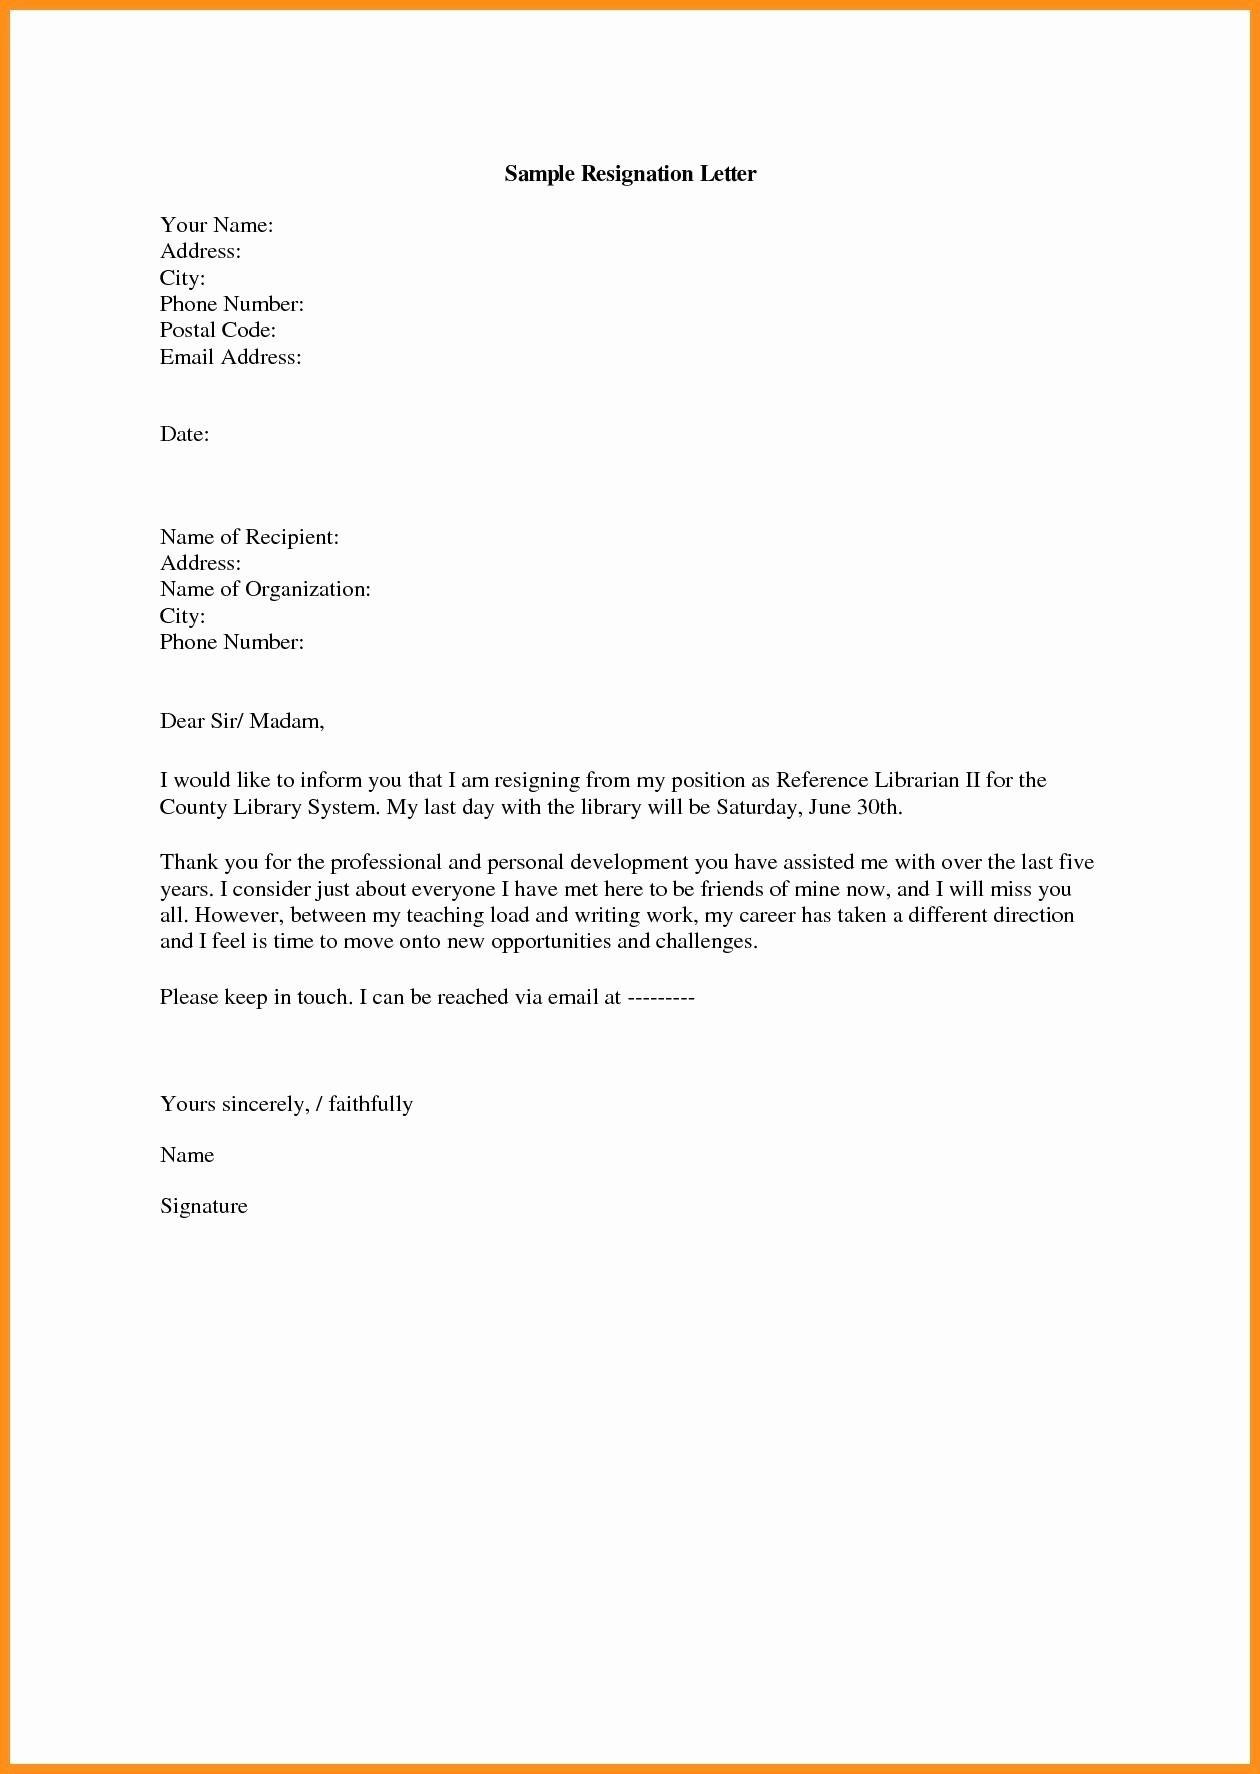 transmittal letter template example-Business Letter Guidelines Best Template for Business Email Fresh Transmittal Sheet Template Best 0d 15-o